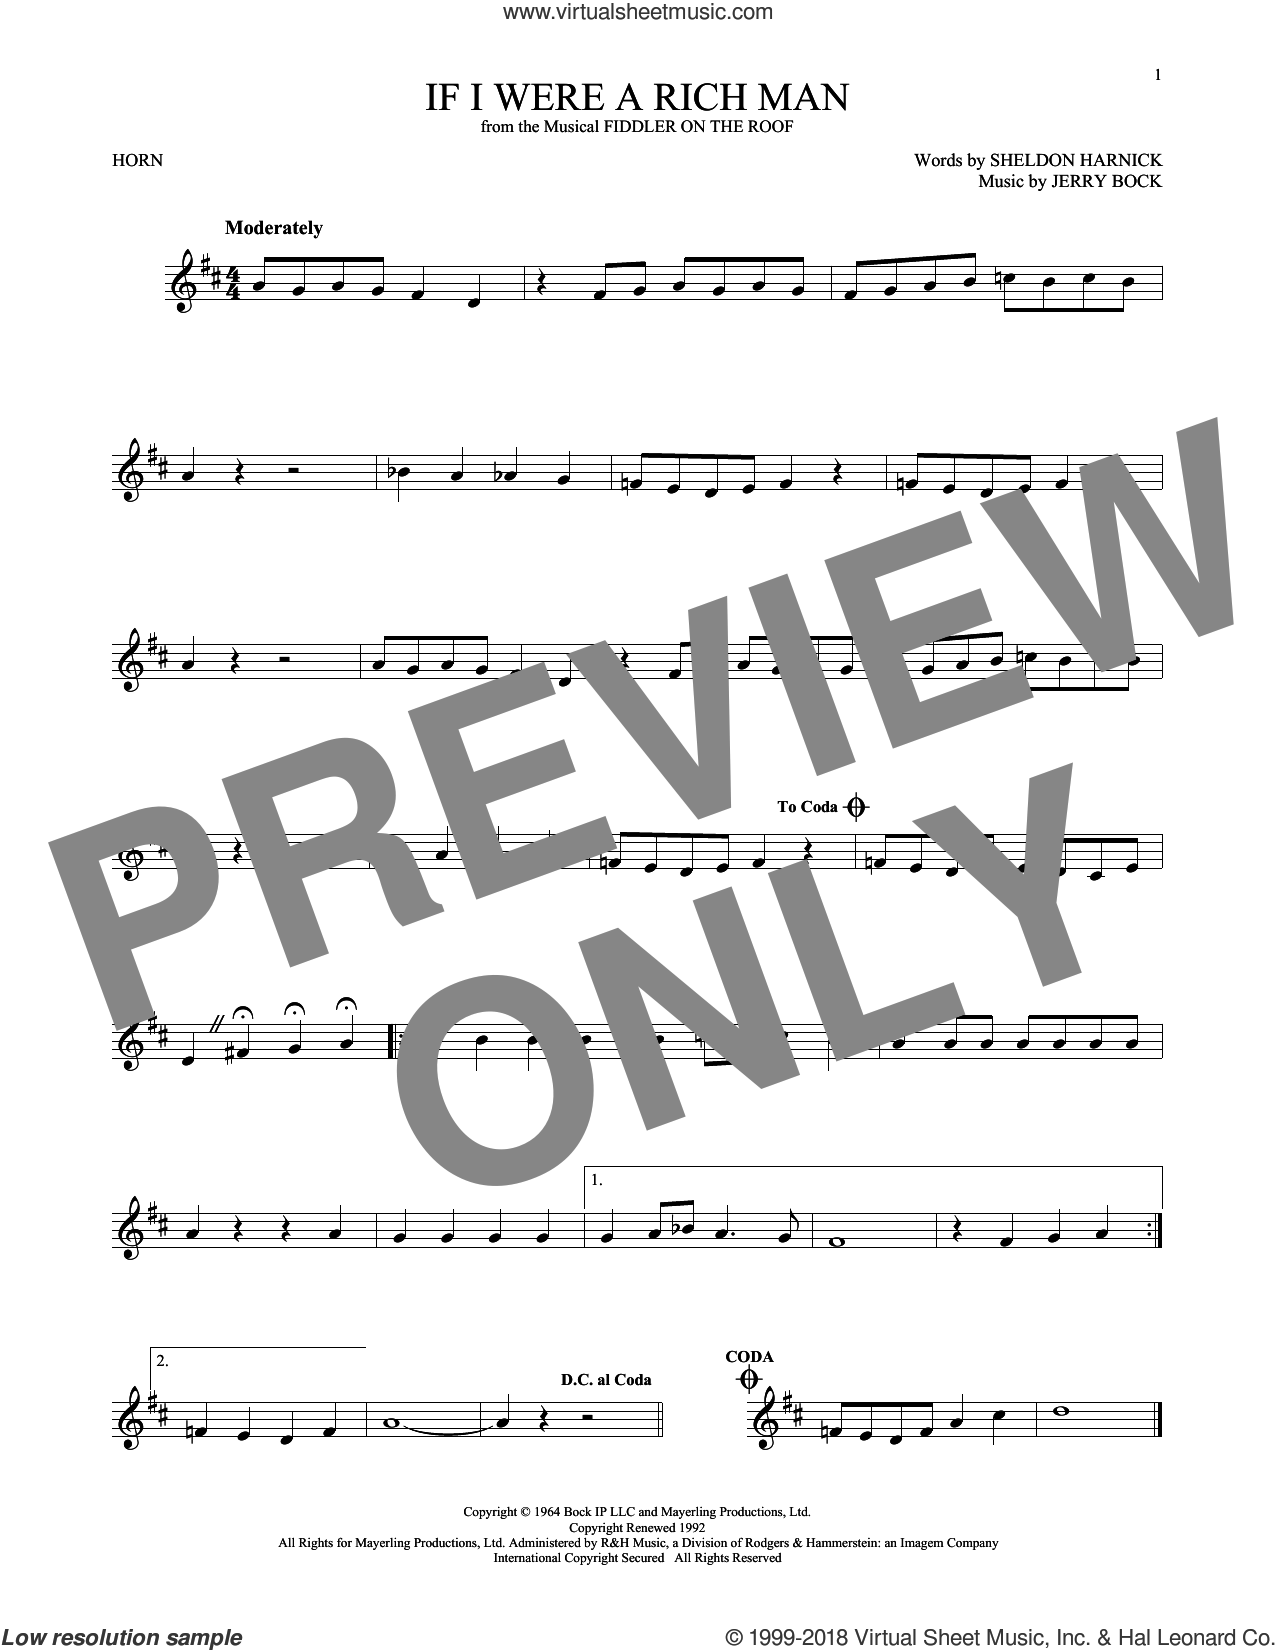 If I Were A Rich Man sheet music for horn solo by Sheldon Harnick and Jerry Bock, intermediate skill level